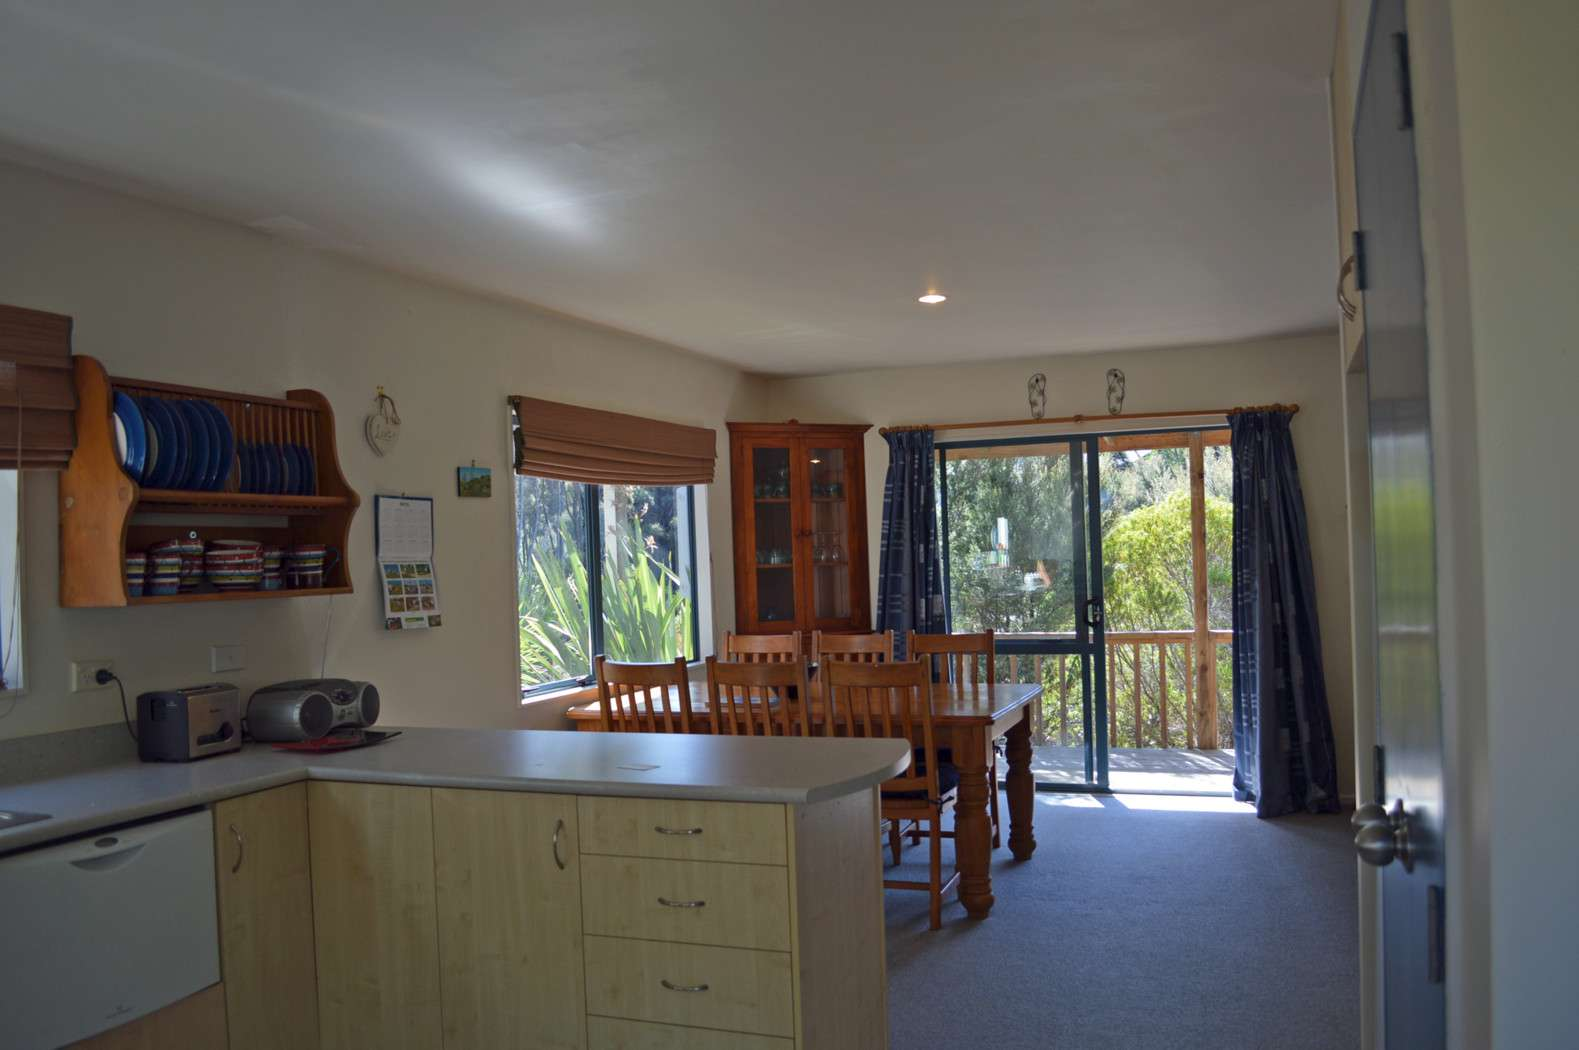 30 Greenview Drive, MANGAWHAI HEADS, Kaipara District 0505